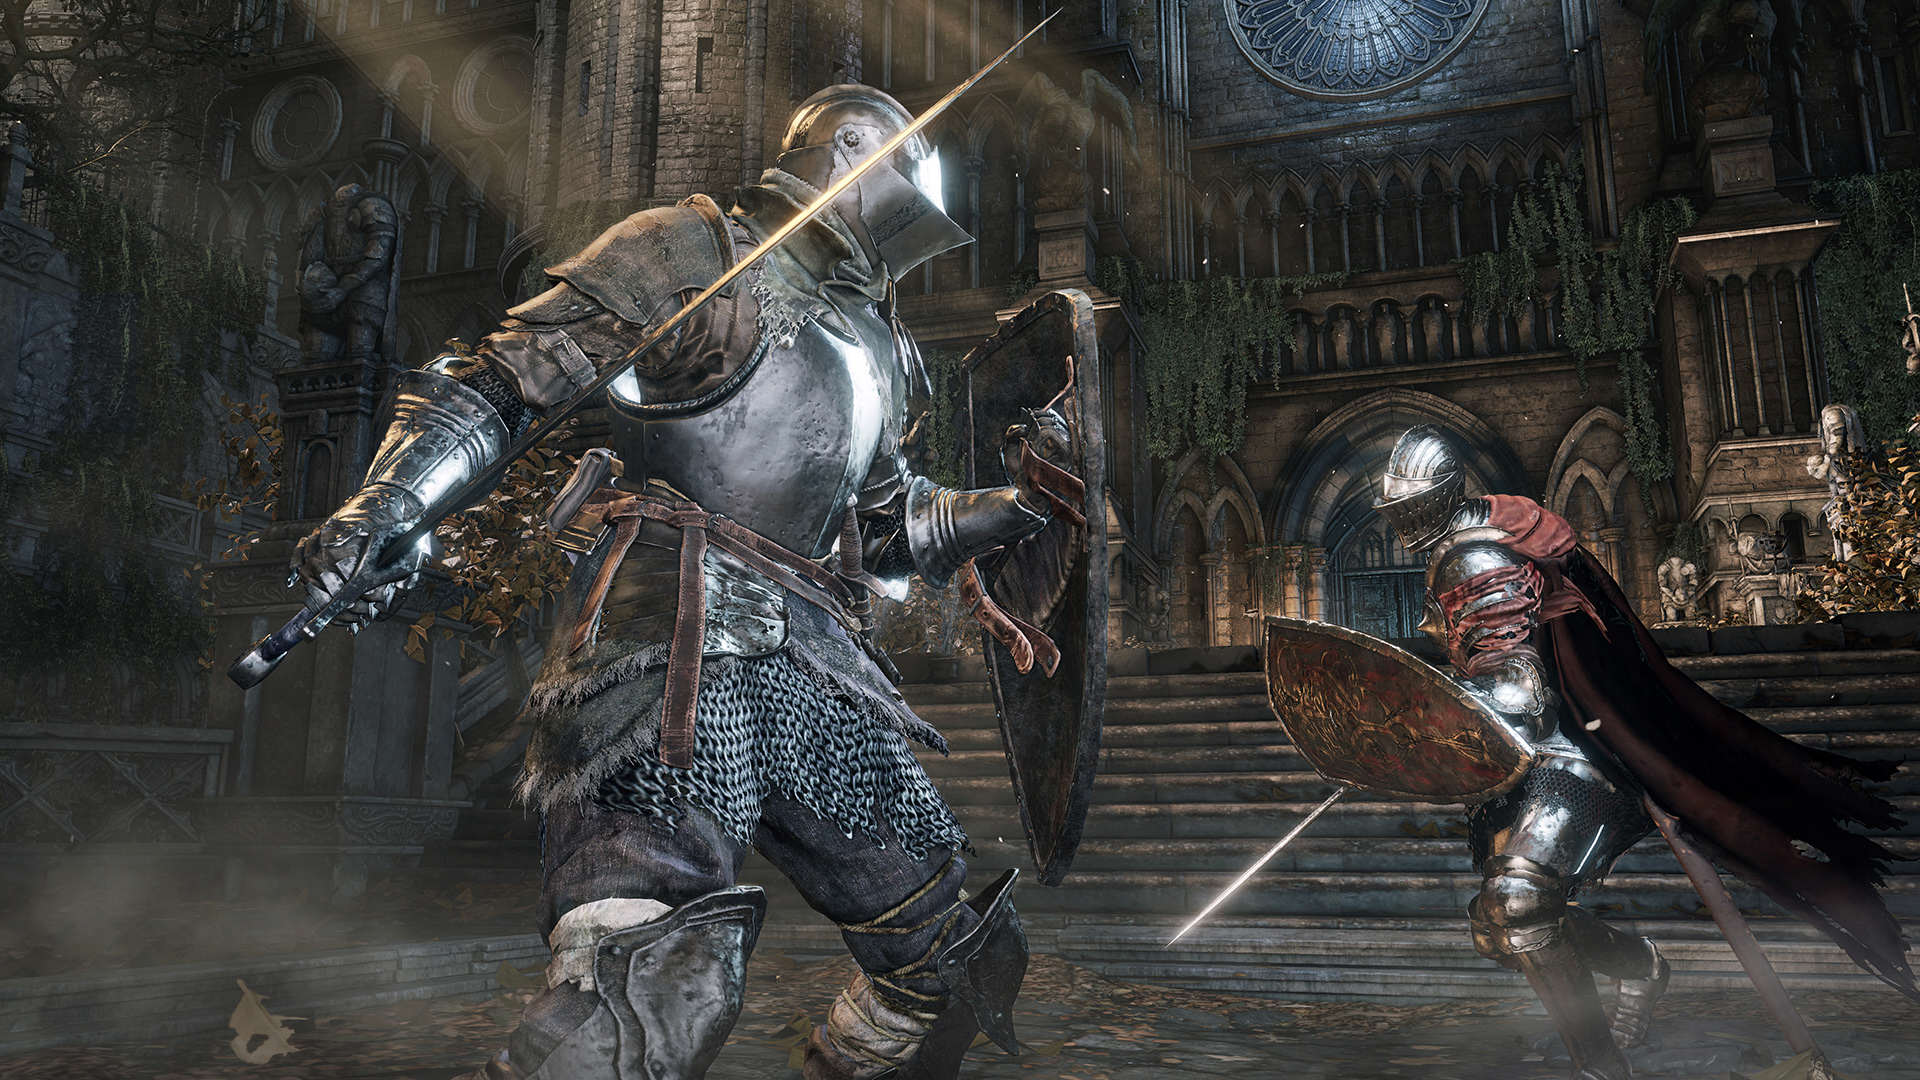 New Dark Souls 3 Video Shows Off Thief Class, Moves And Abilities 2980097 dark souls iii 6